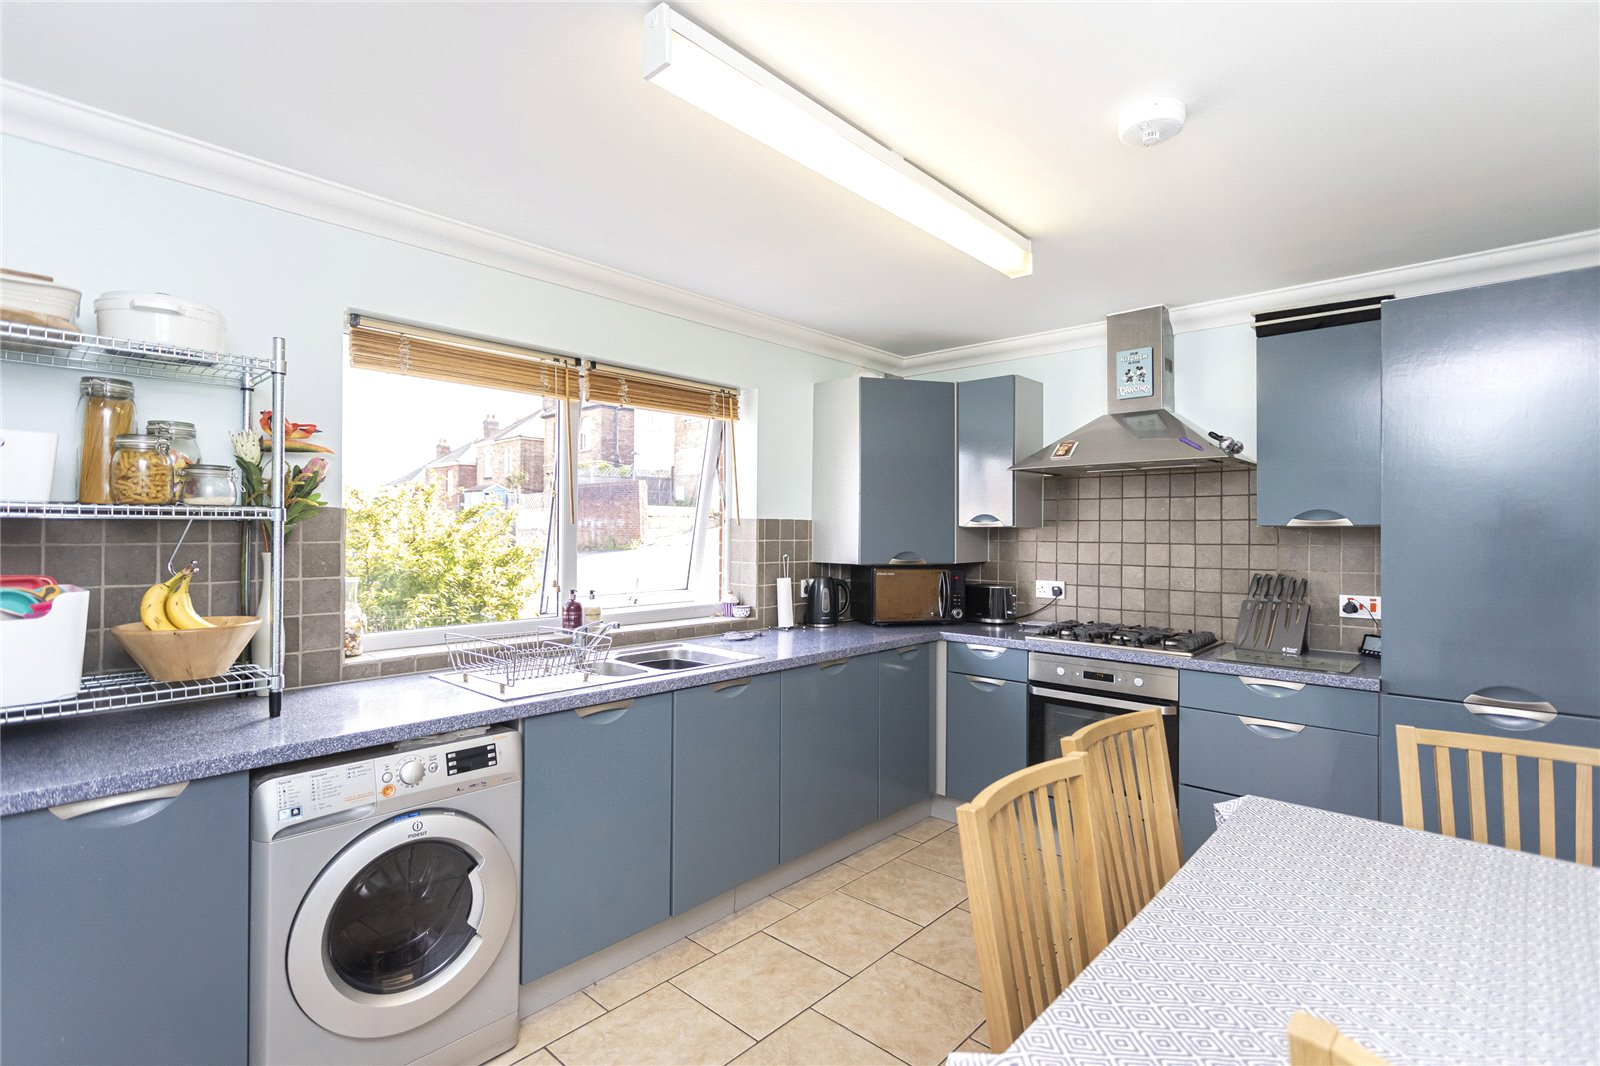 3 bed house for sale in Douglas Road, Branksome, BH12